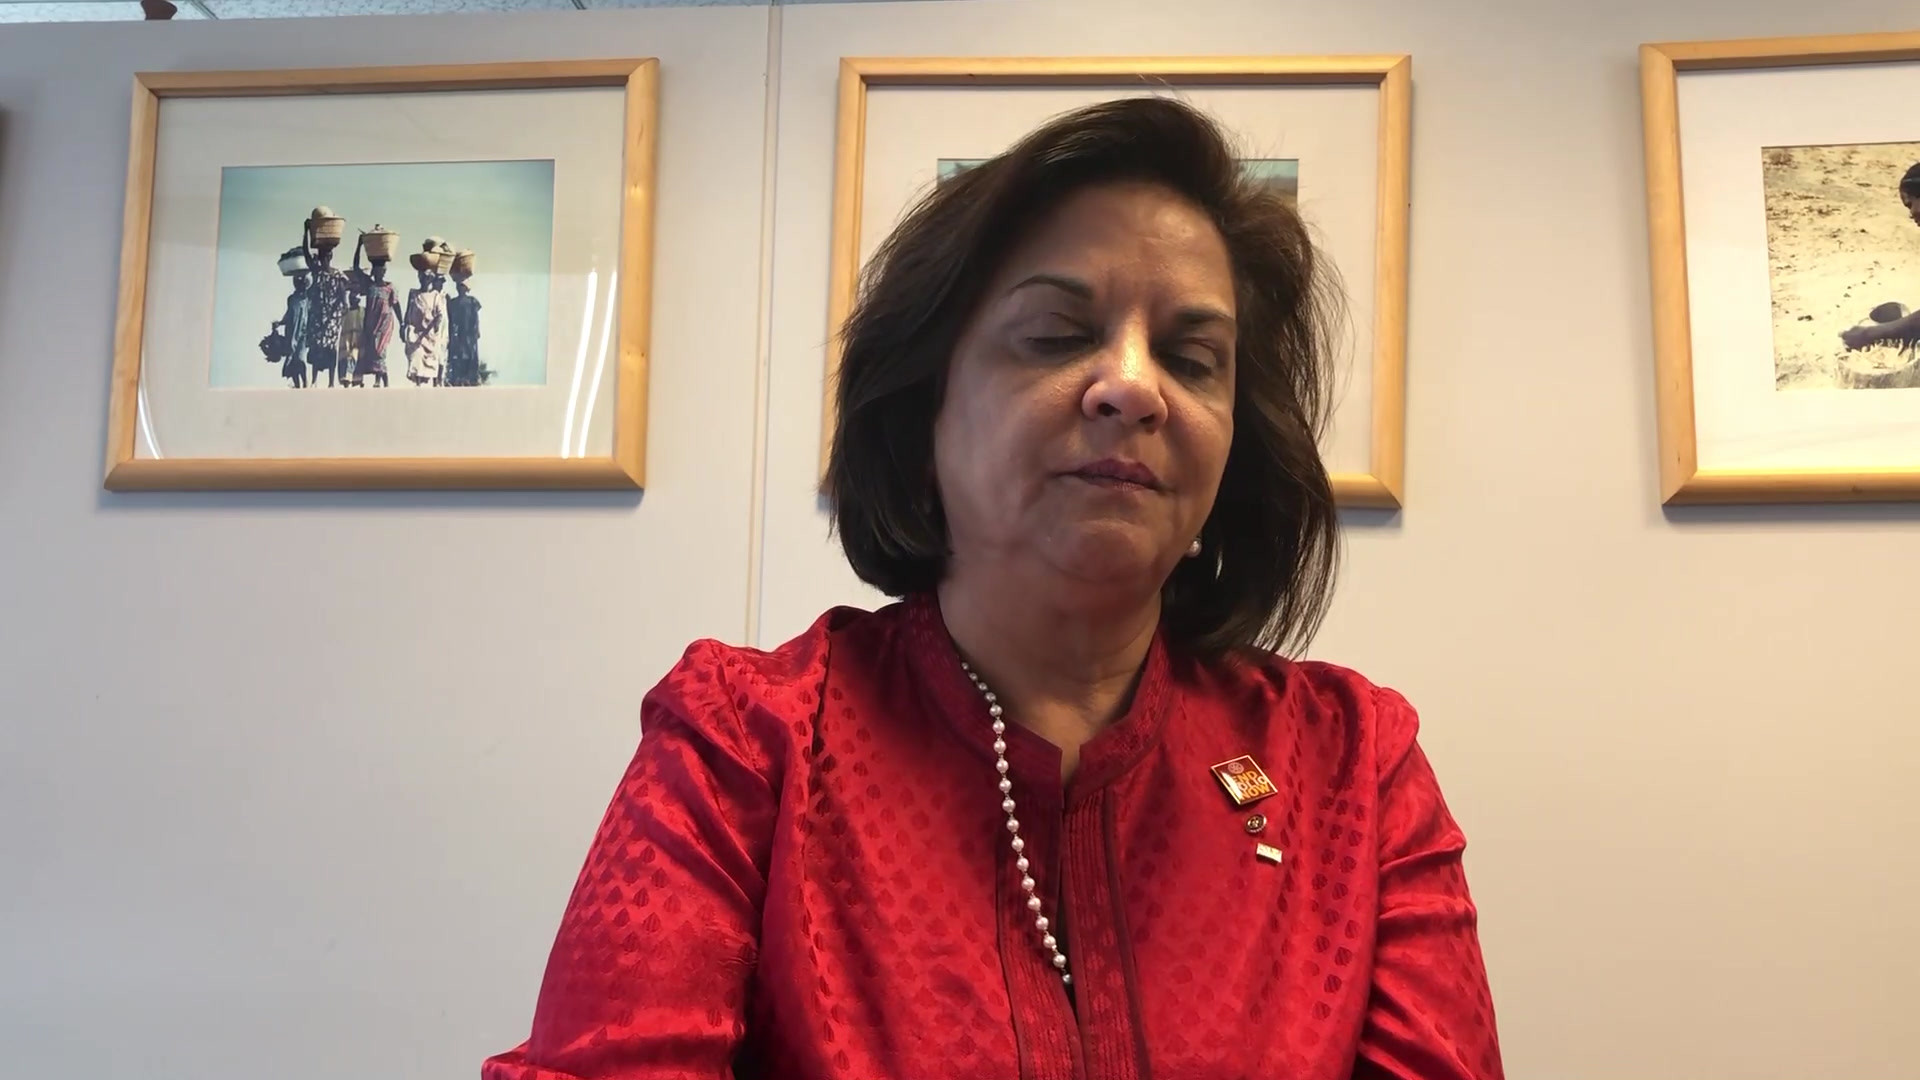 March 2020 - Geeta Manek, Incoming trustee of the Rotary Foundation of Rotary International